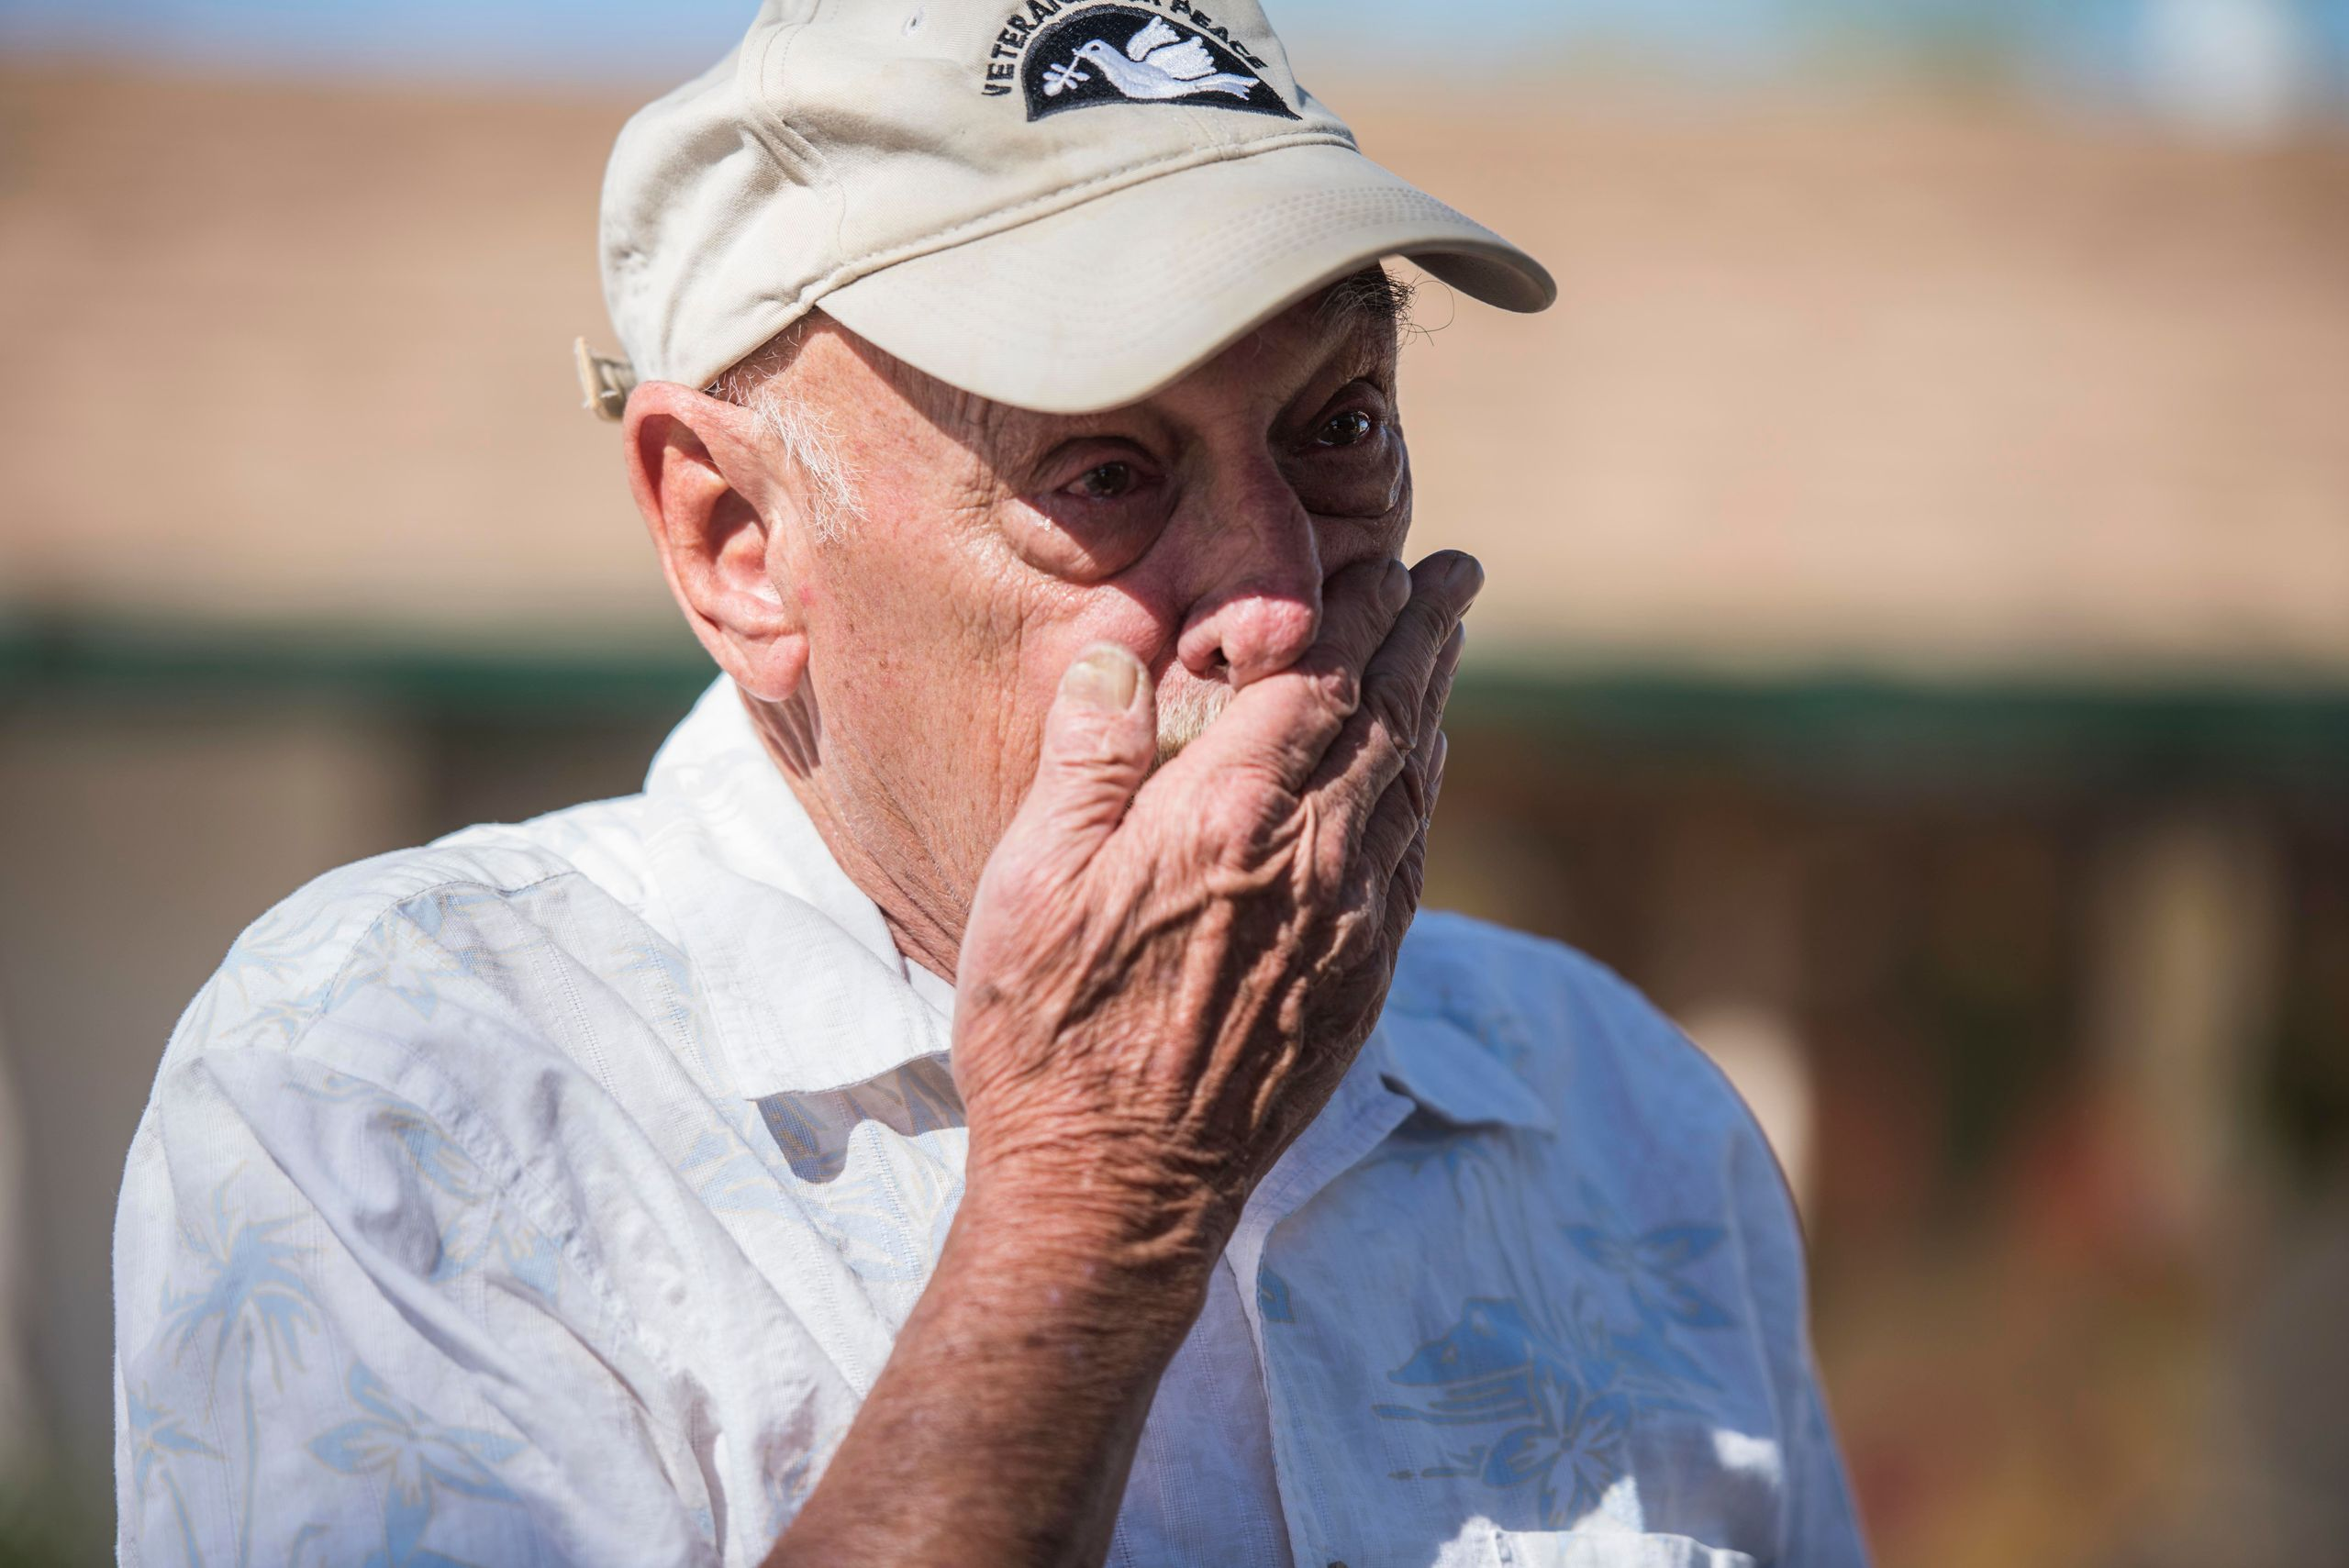 Dan Kelly,a 72-year-old Vietnam veteran, cries while explaining the humanitarian crisis on the border of the U.S. and M